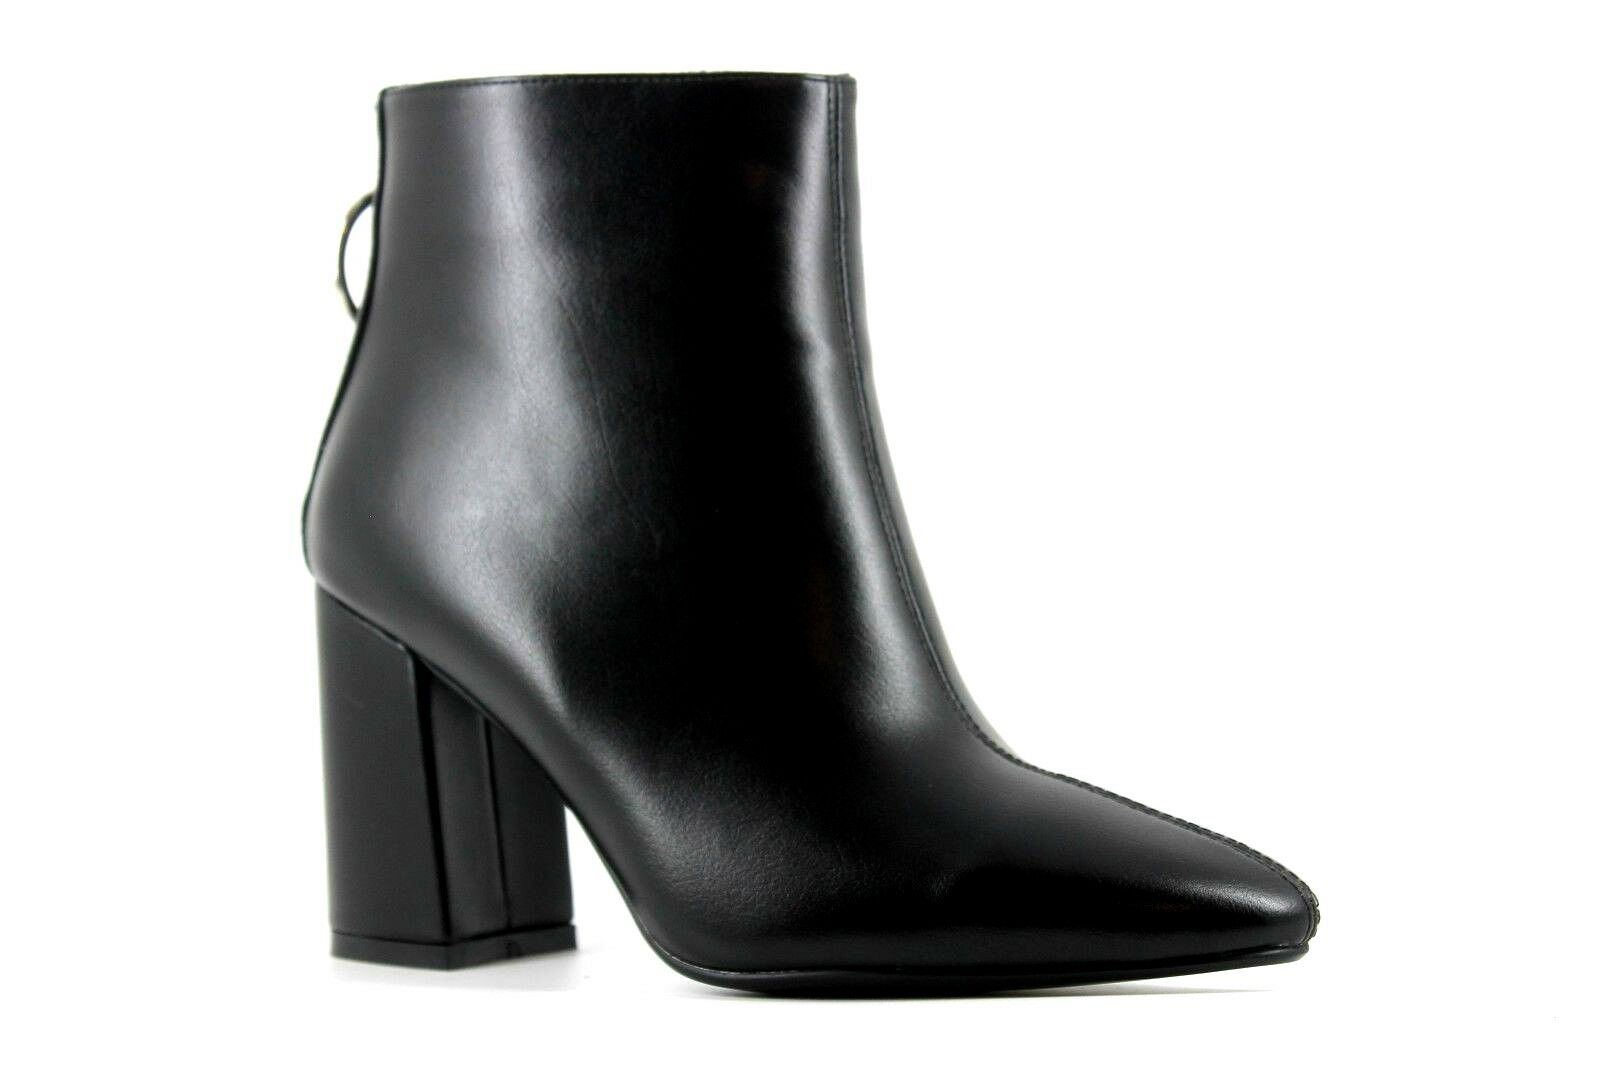 4th Reckless Womens UK 6 EU 39 Black Rear Zip Pointed Toe High Heel Ankle Boots